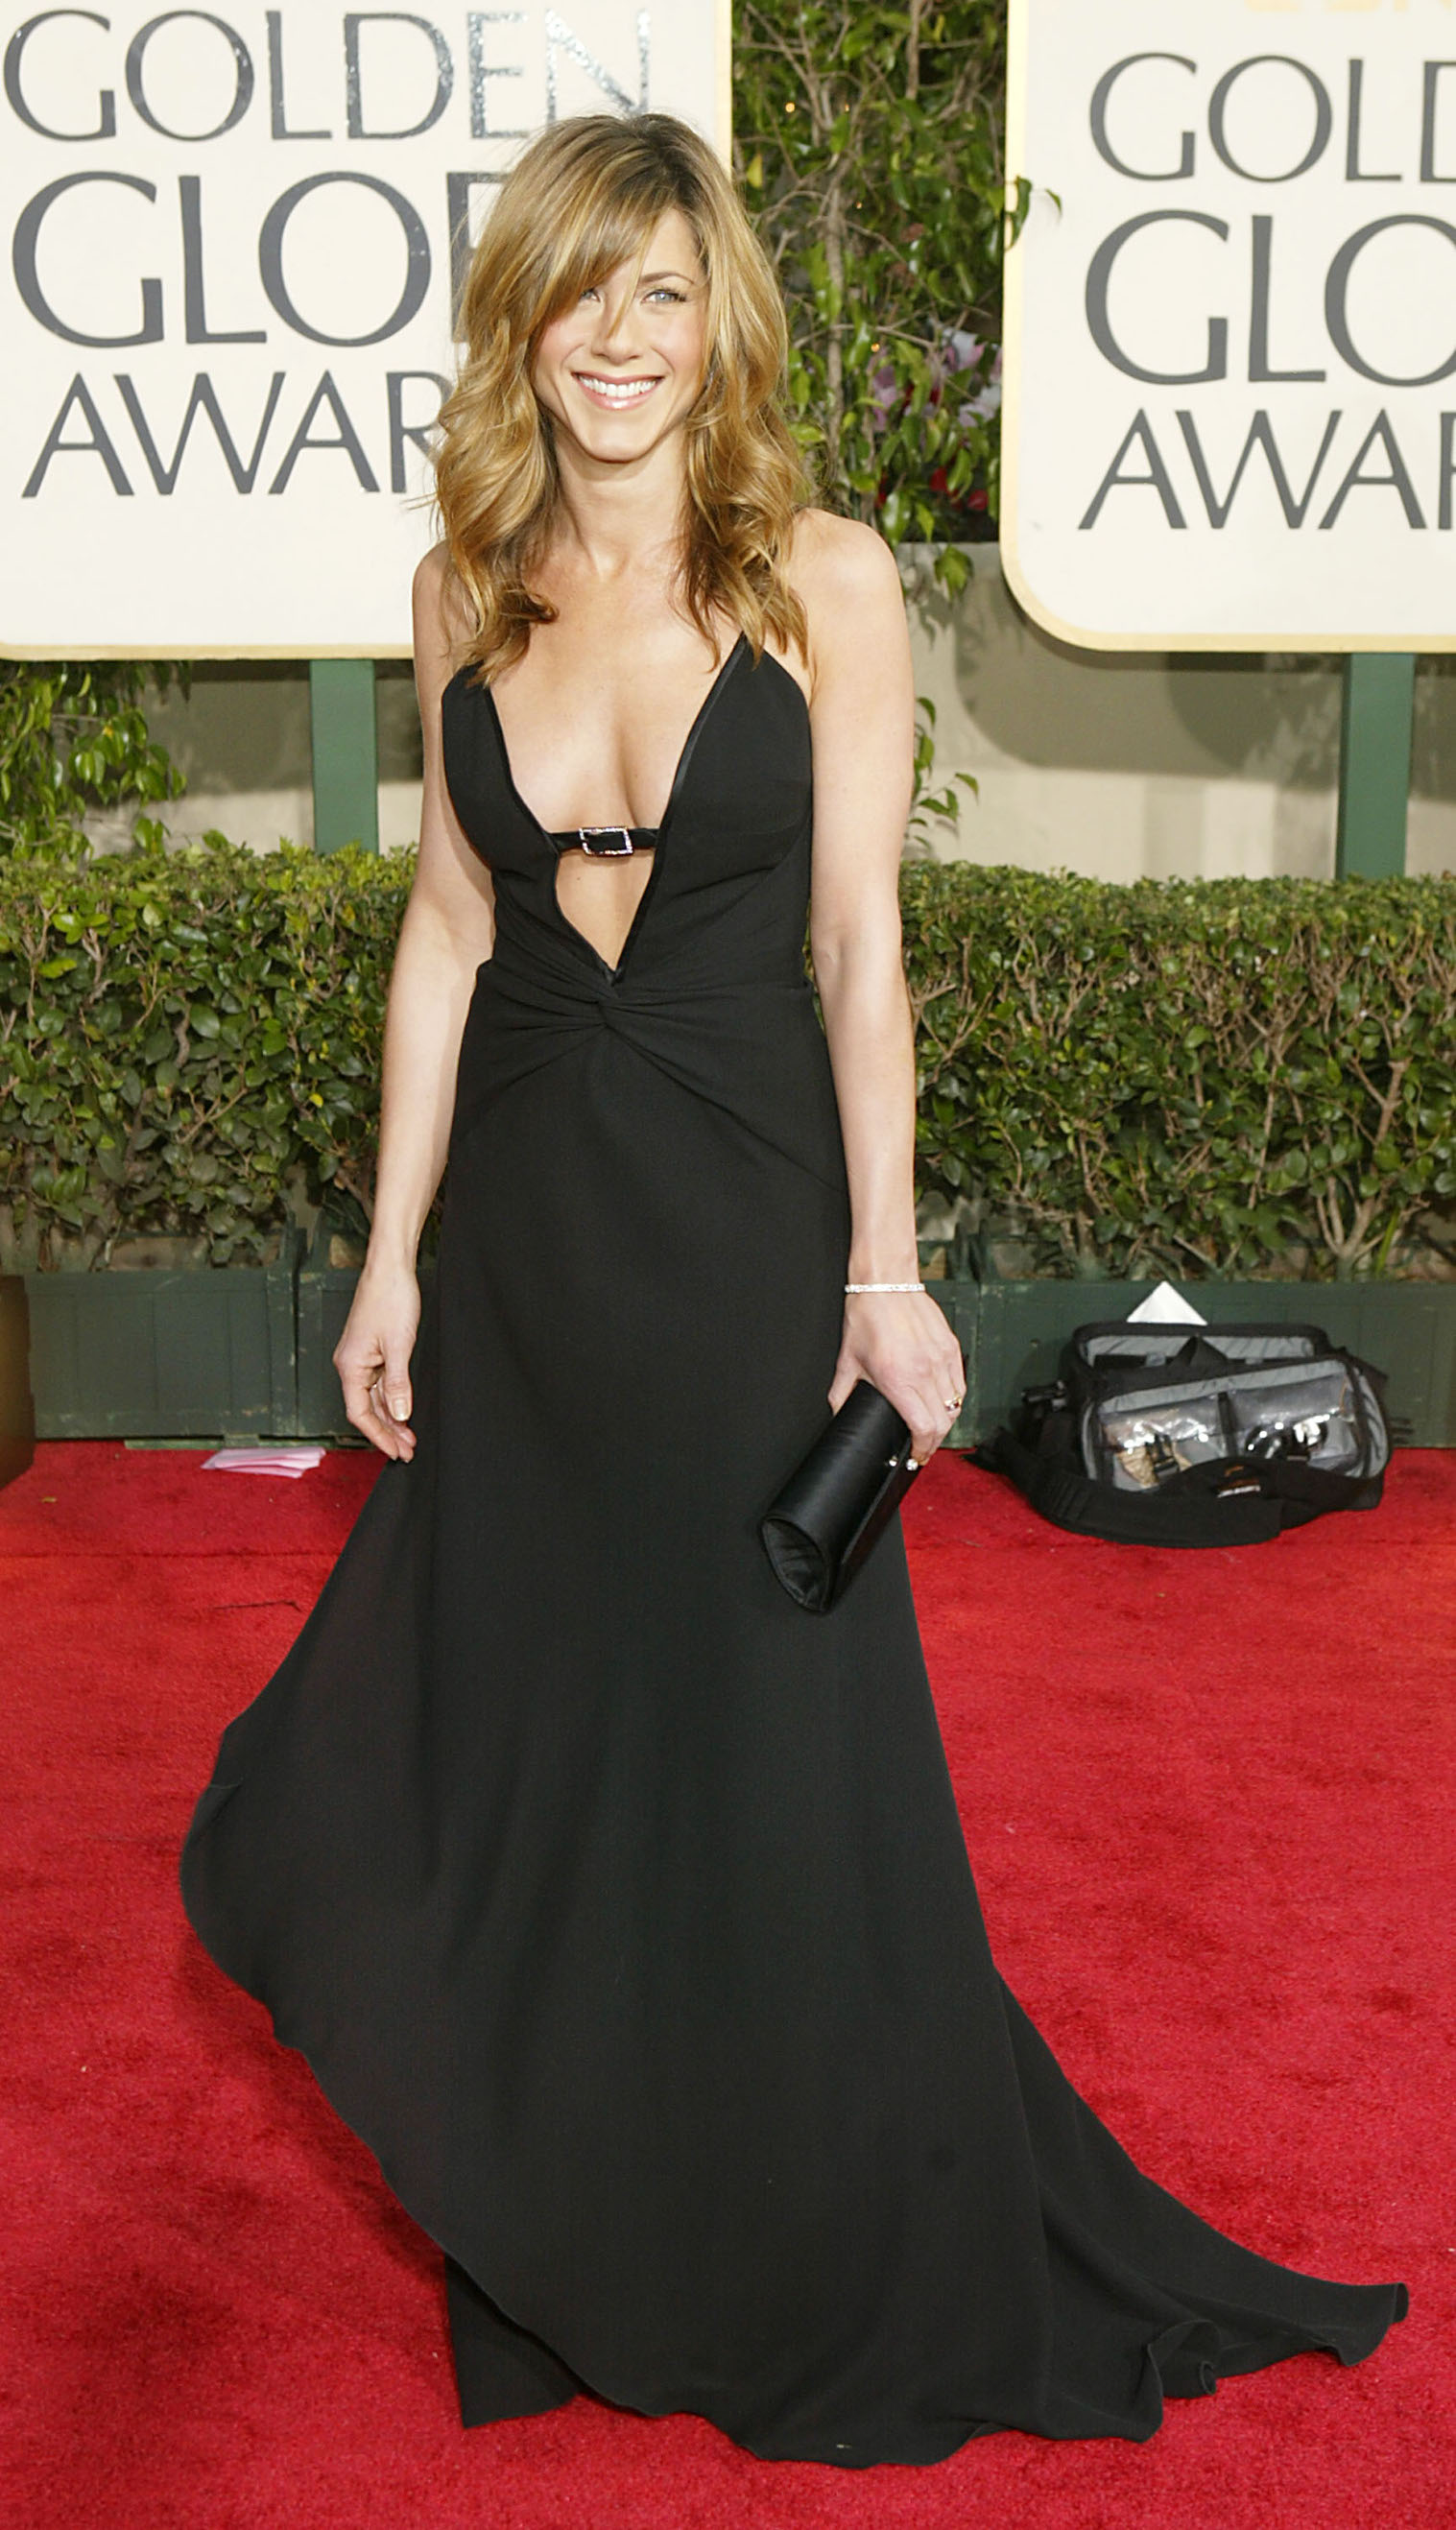 BEVERLY HILLS, CA - JANUARY 25:  Actress Jennifer Aniston attends the 61st Annual Golden Globe Awards at the Beverly Hilton Hotel on January 25, 2004 in Beverly Hills, California. (Photo by Carlo Allegri/Getty Images)